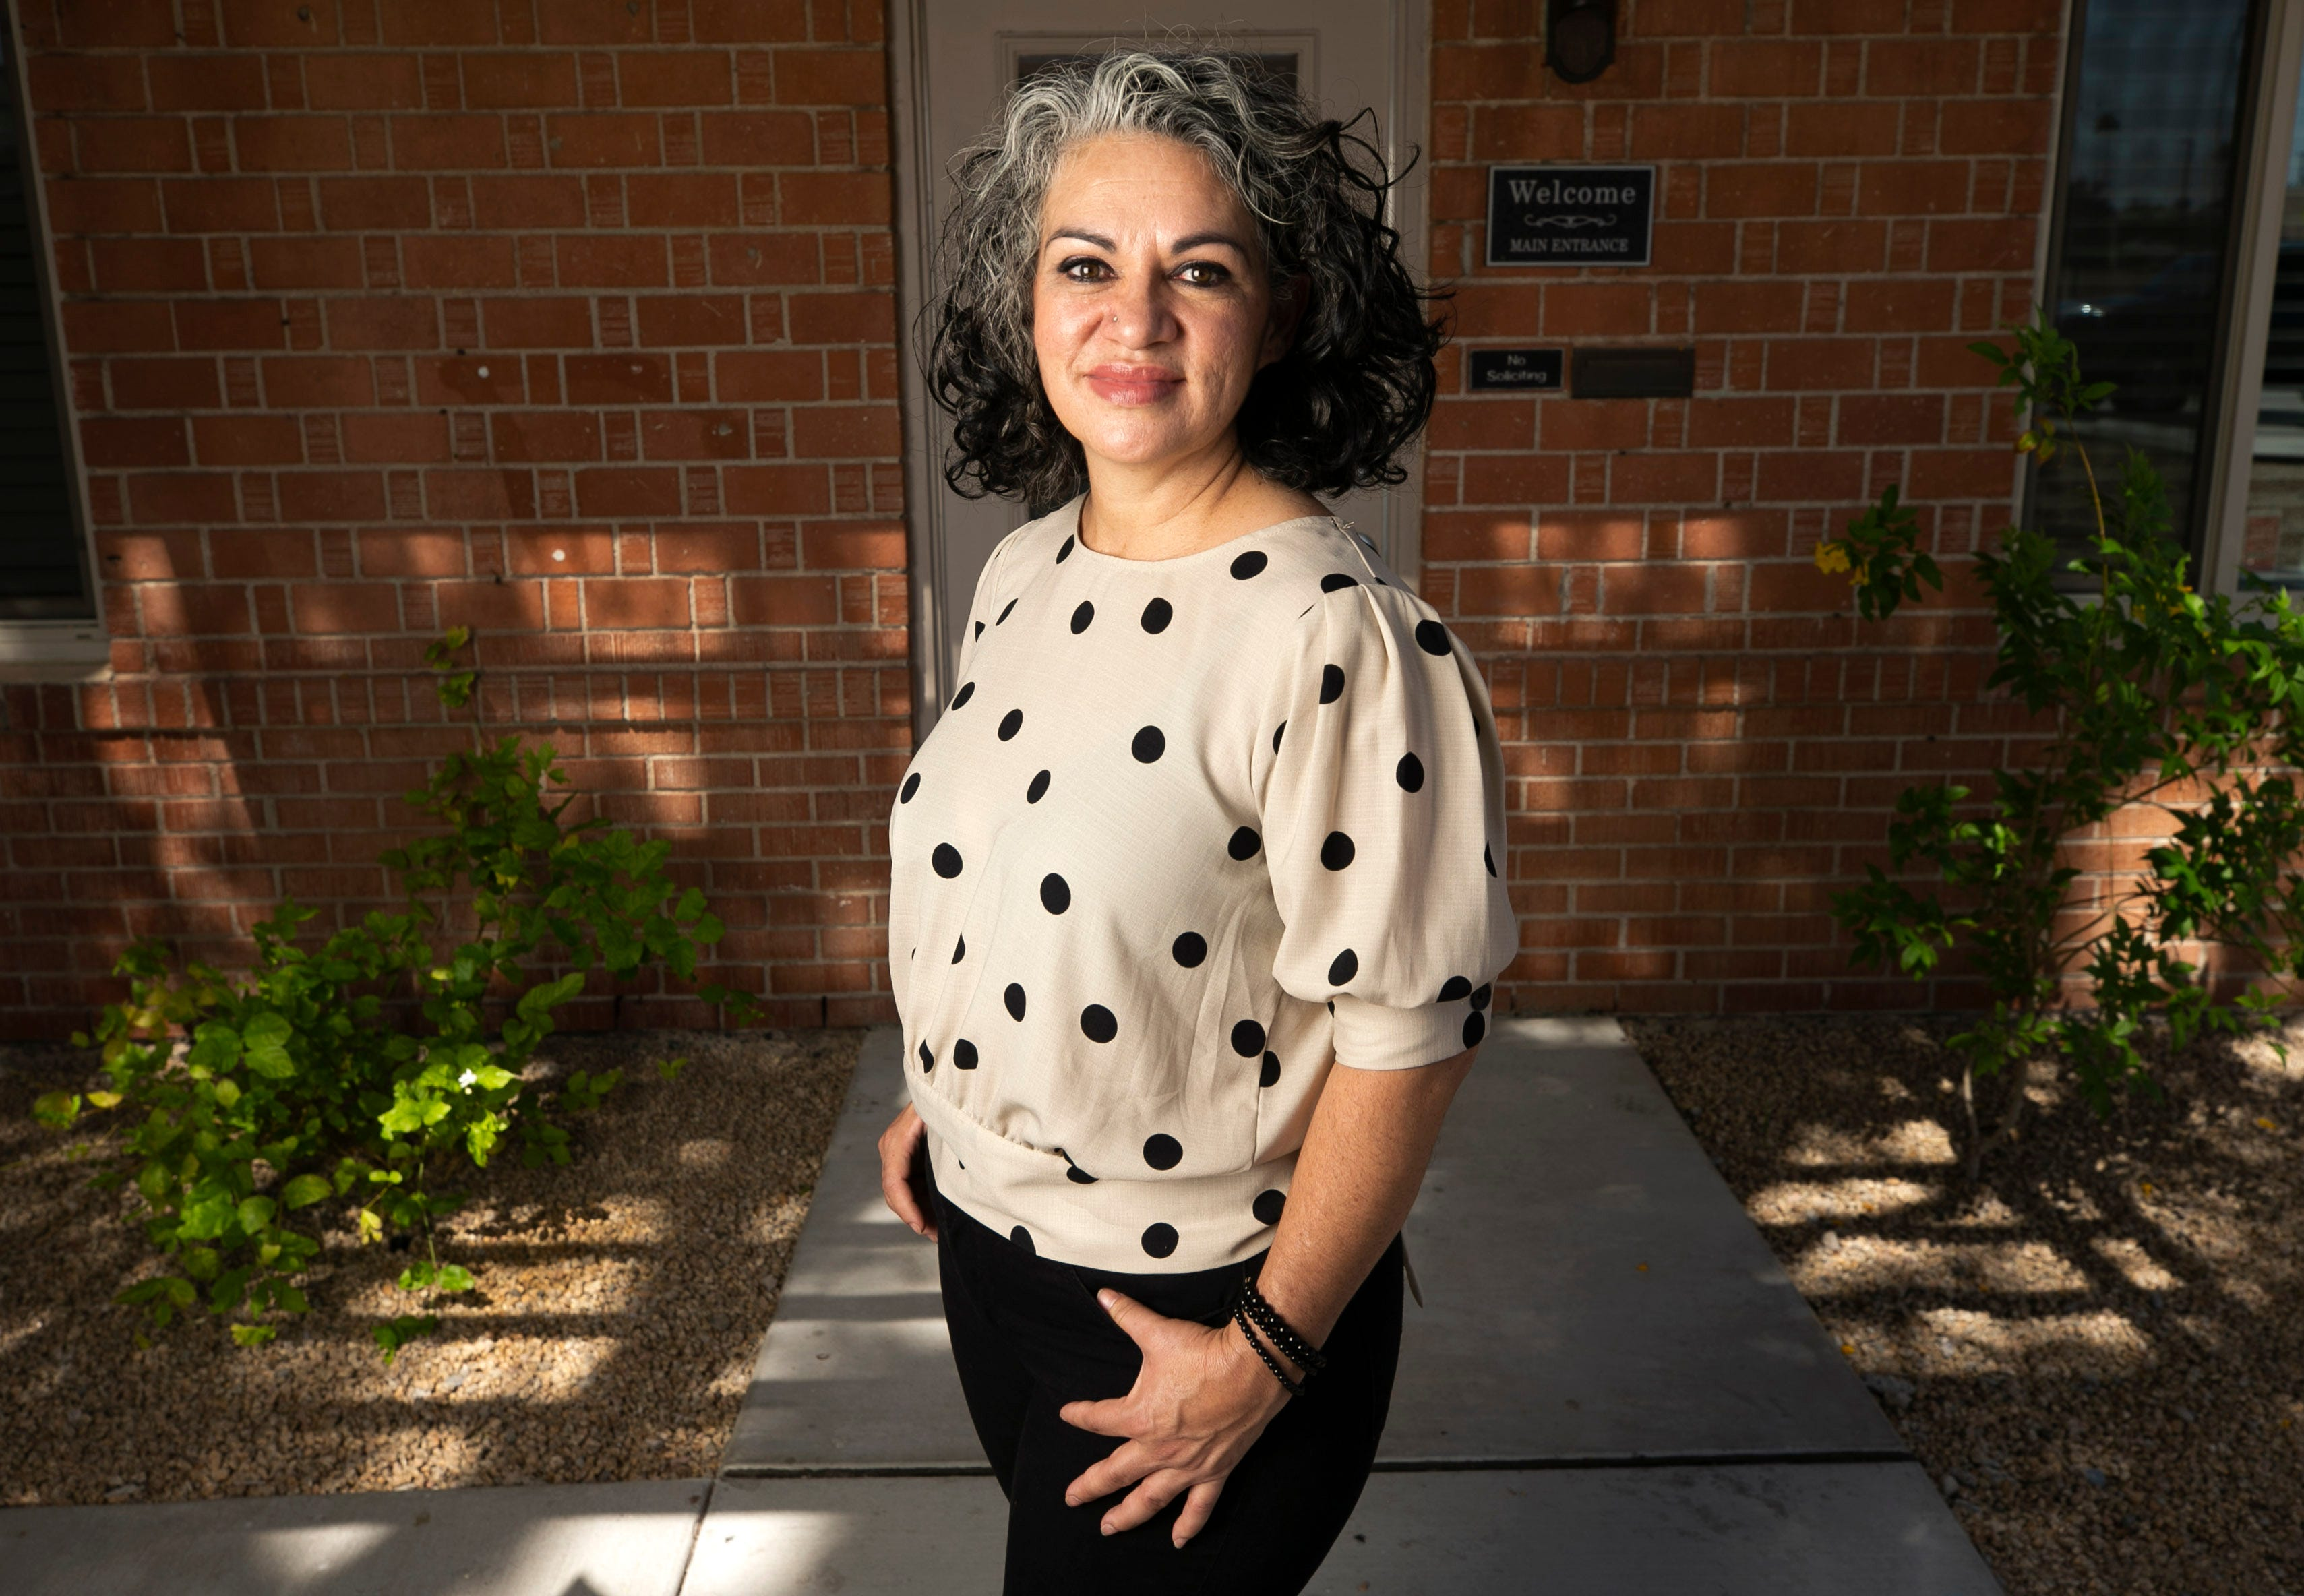 Maria Valenzuela is the domestic program director for Esperança, an organization providing health care services to the Arizona Latino community and developing nations around the world. She is seen at its Phoenix offices on May 14, 2021.